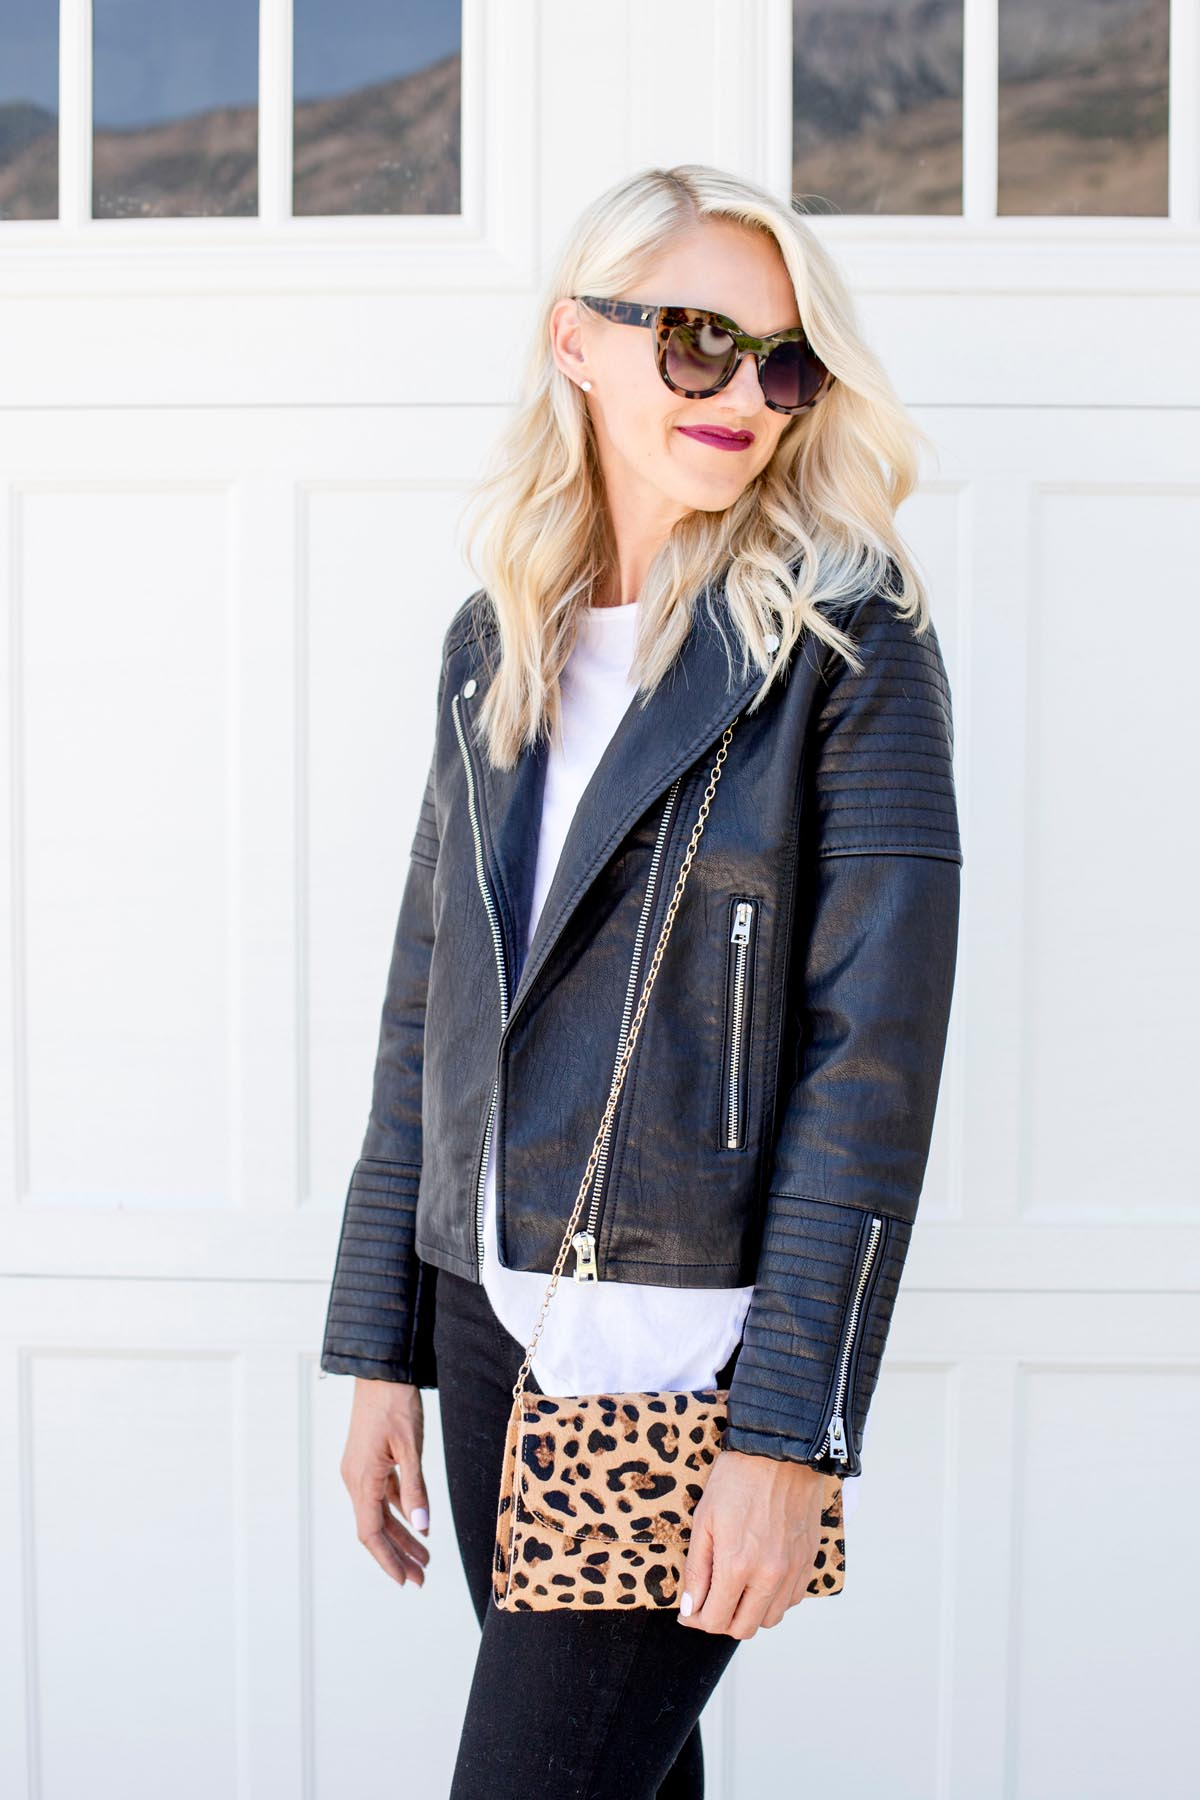 How to Shop the Nordstrom Anniversary Sale: Top 5 Tips!